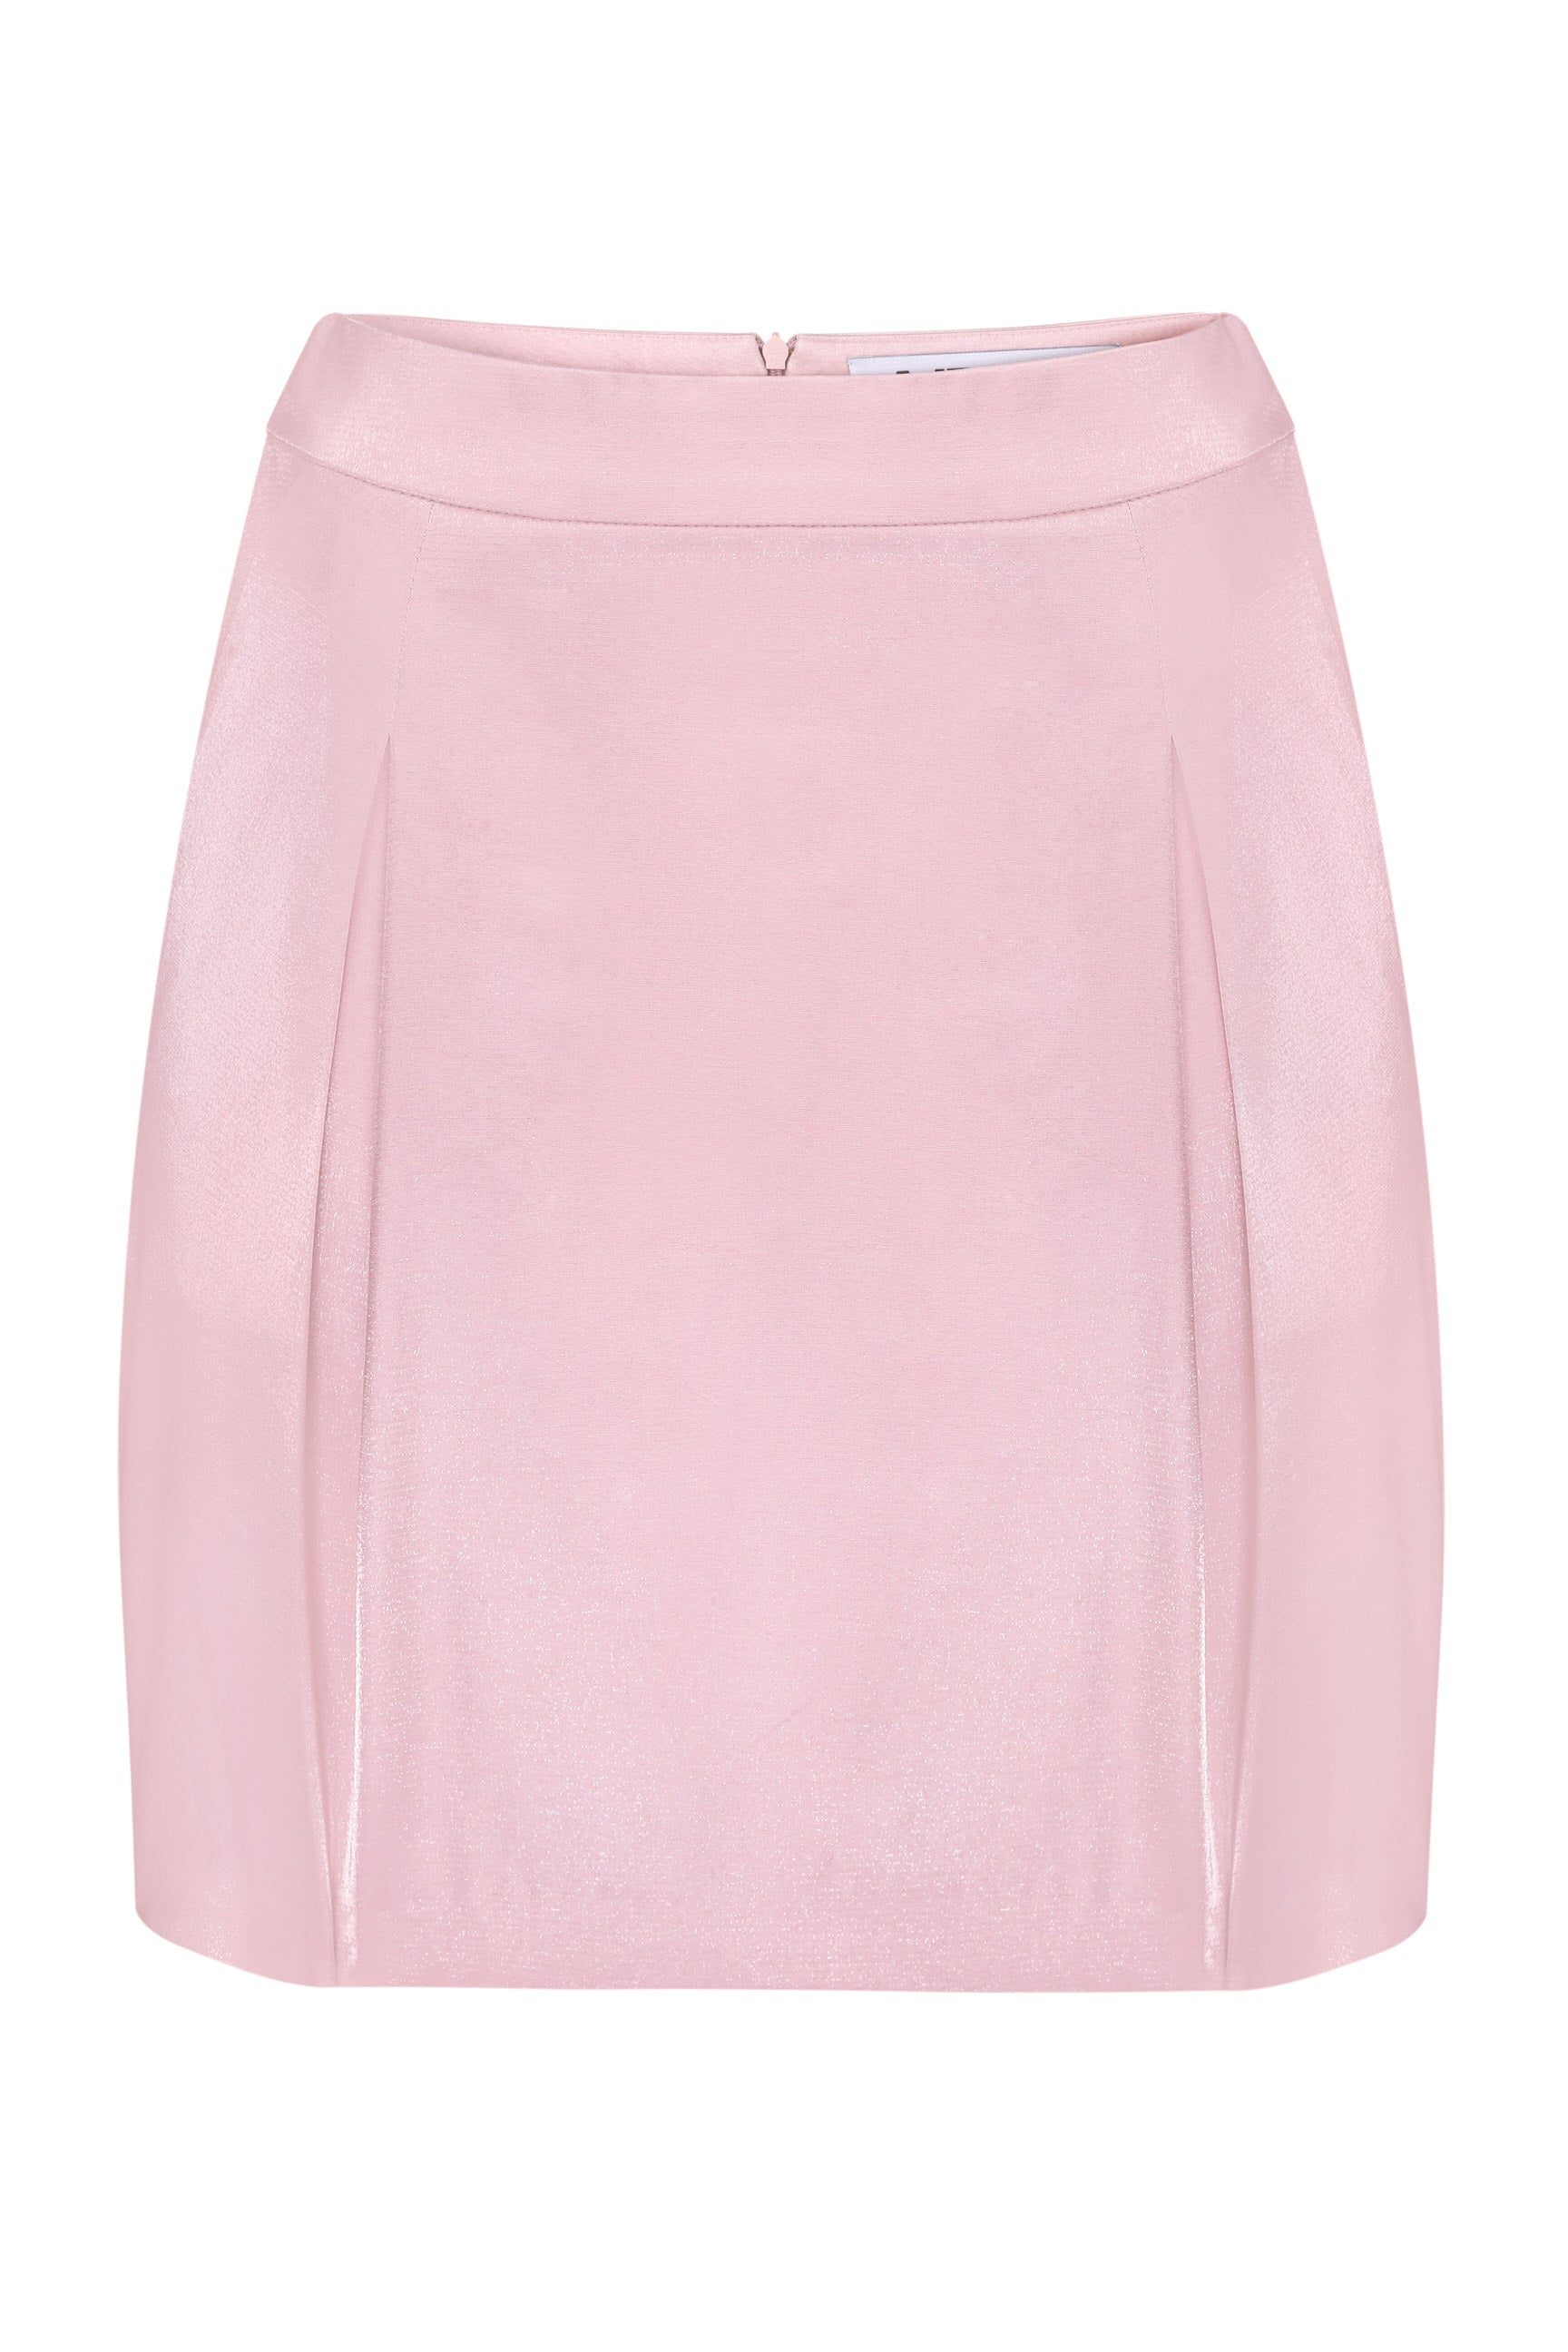 Skirt mini pink shiny viscose